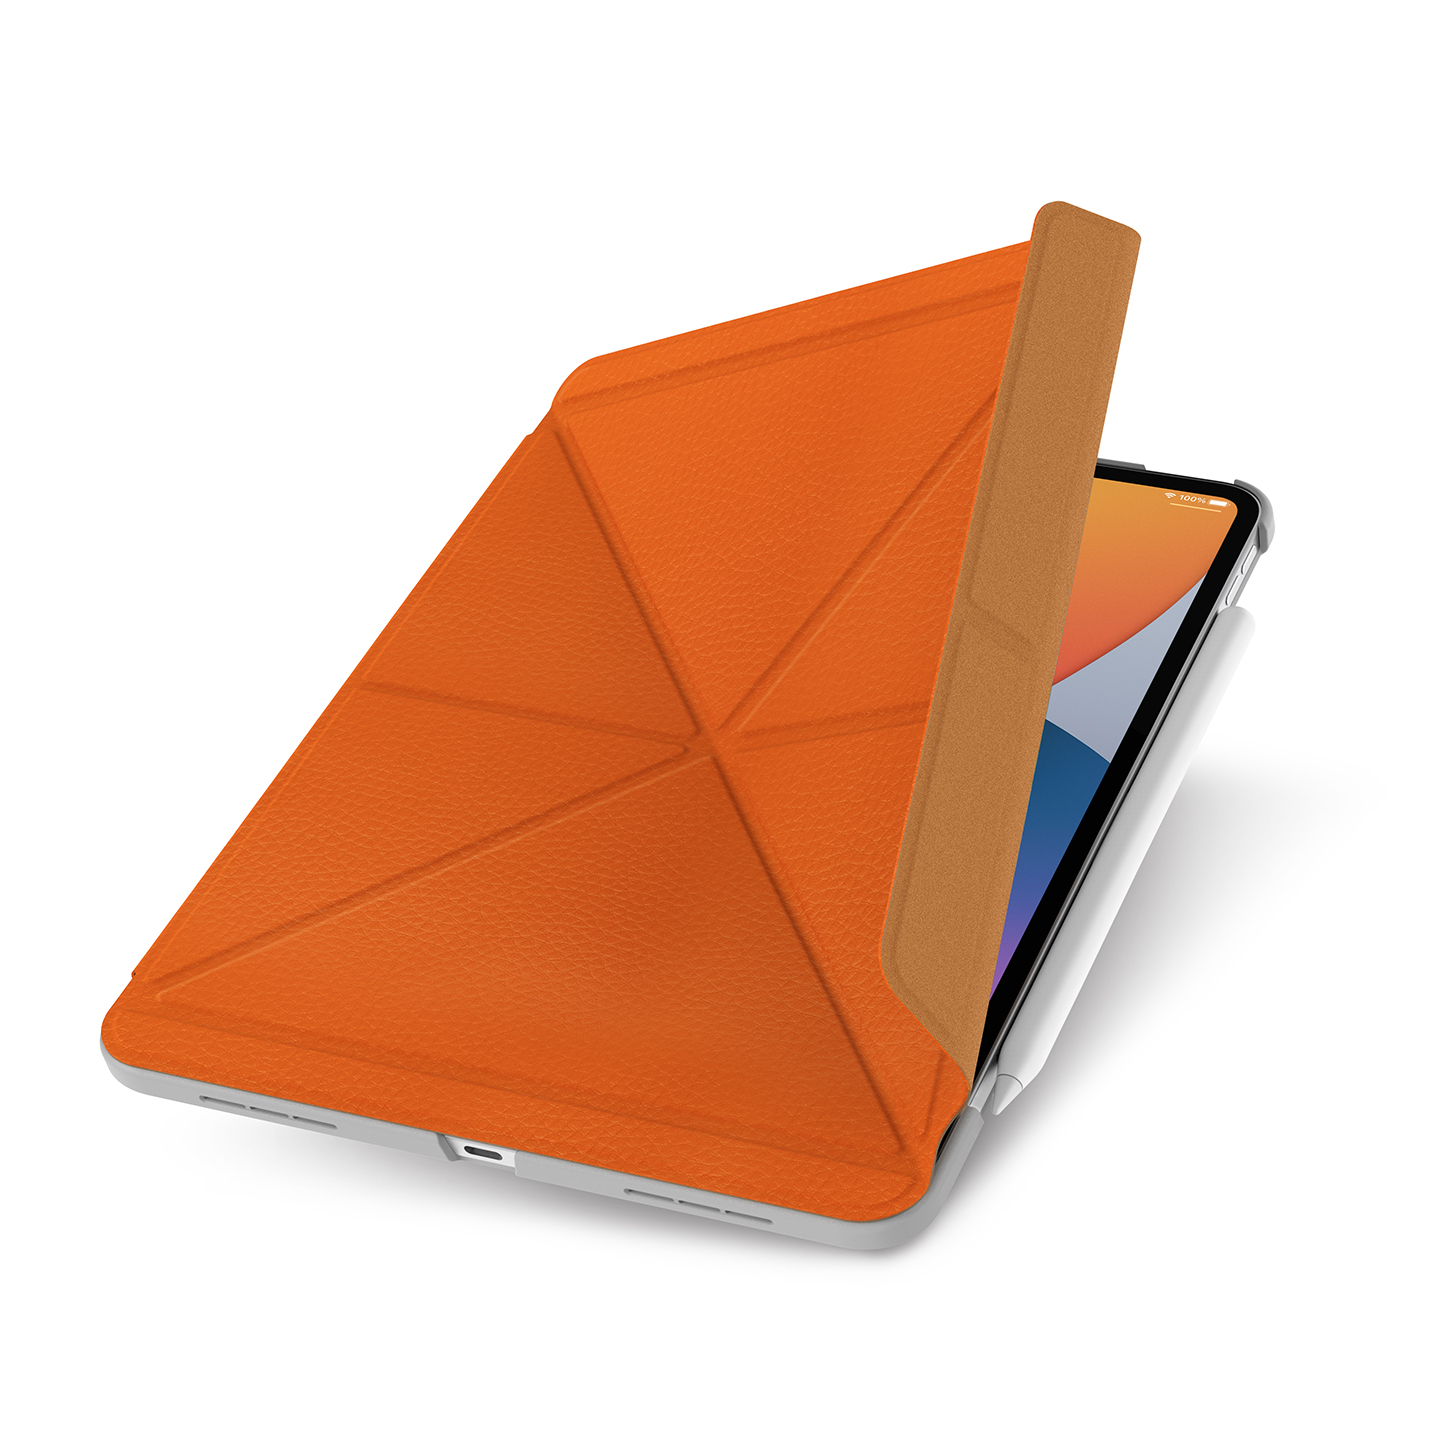 VersaCover Case with Folding Cover-image